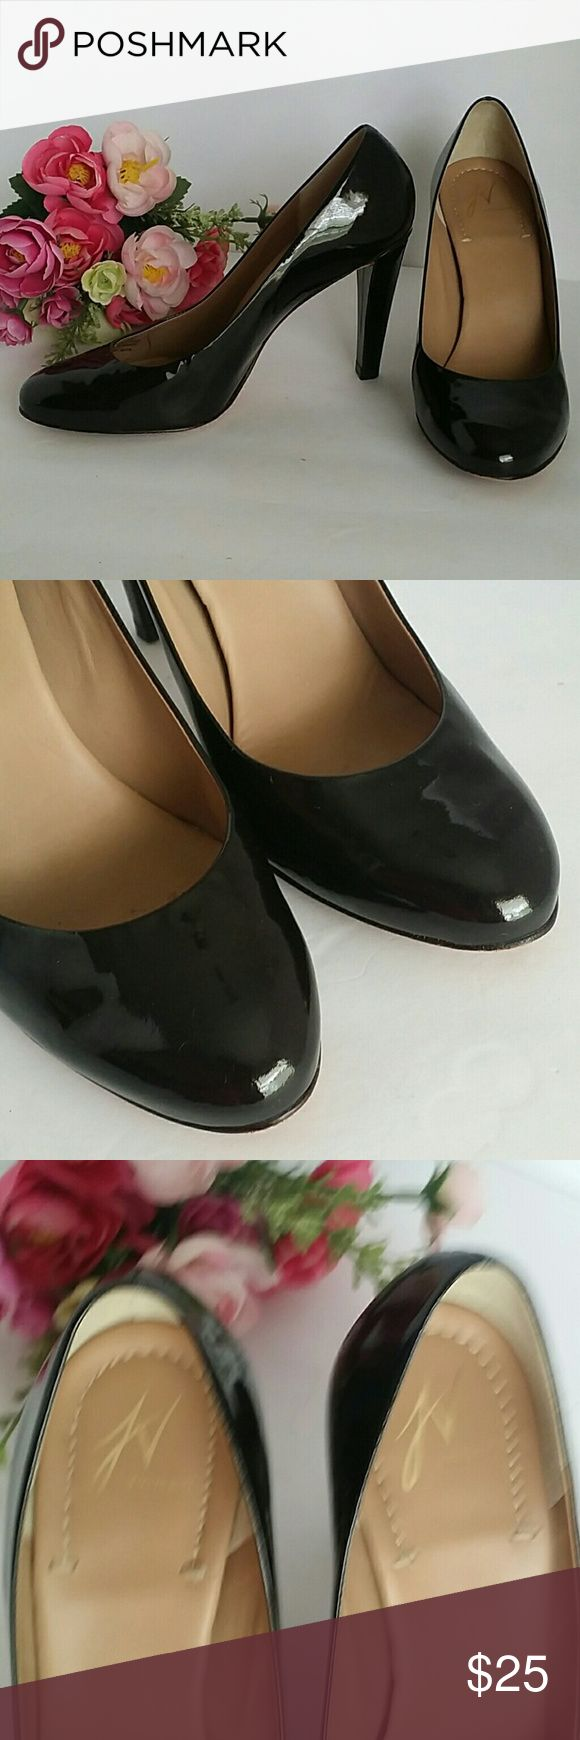 J. Vincent 'Striking' pumps, 8